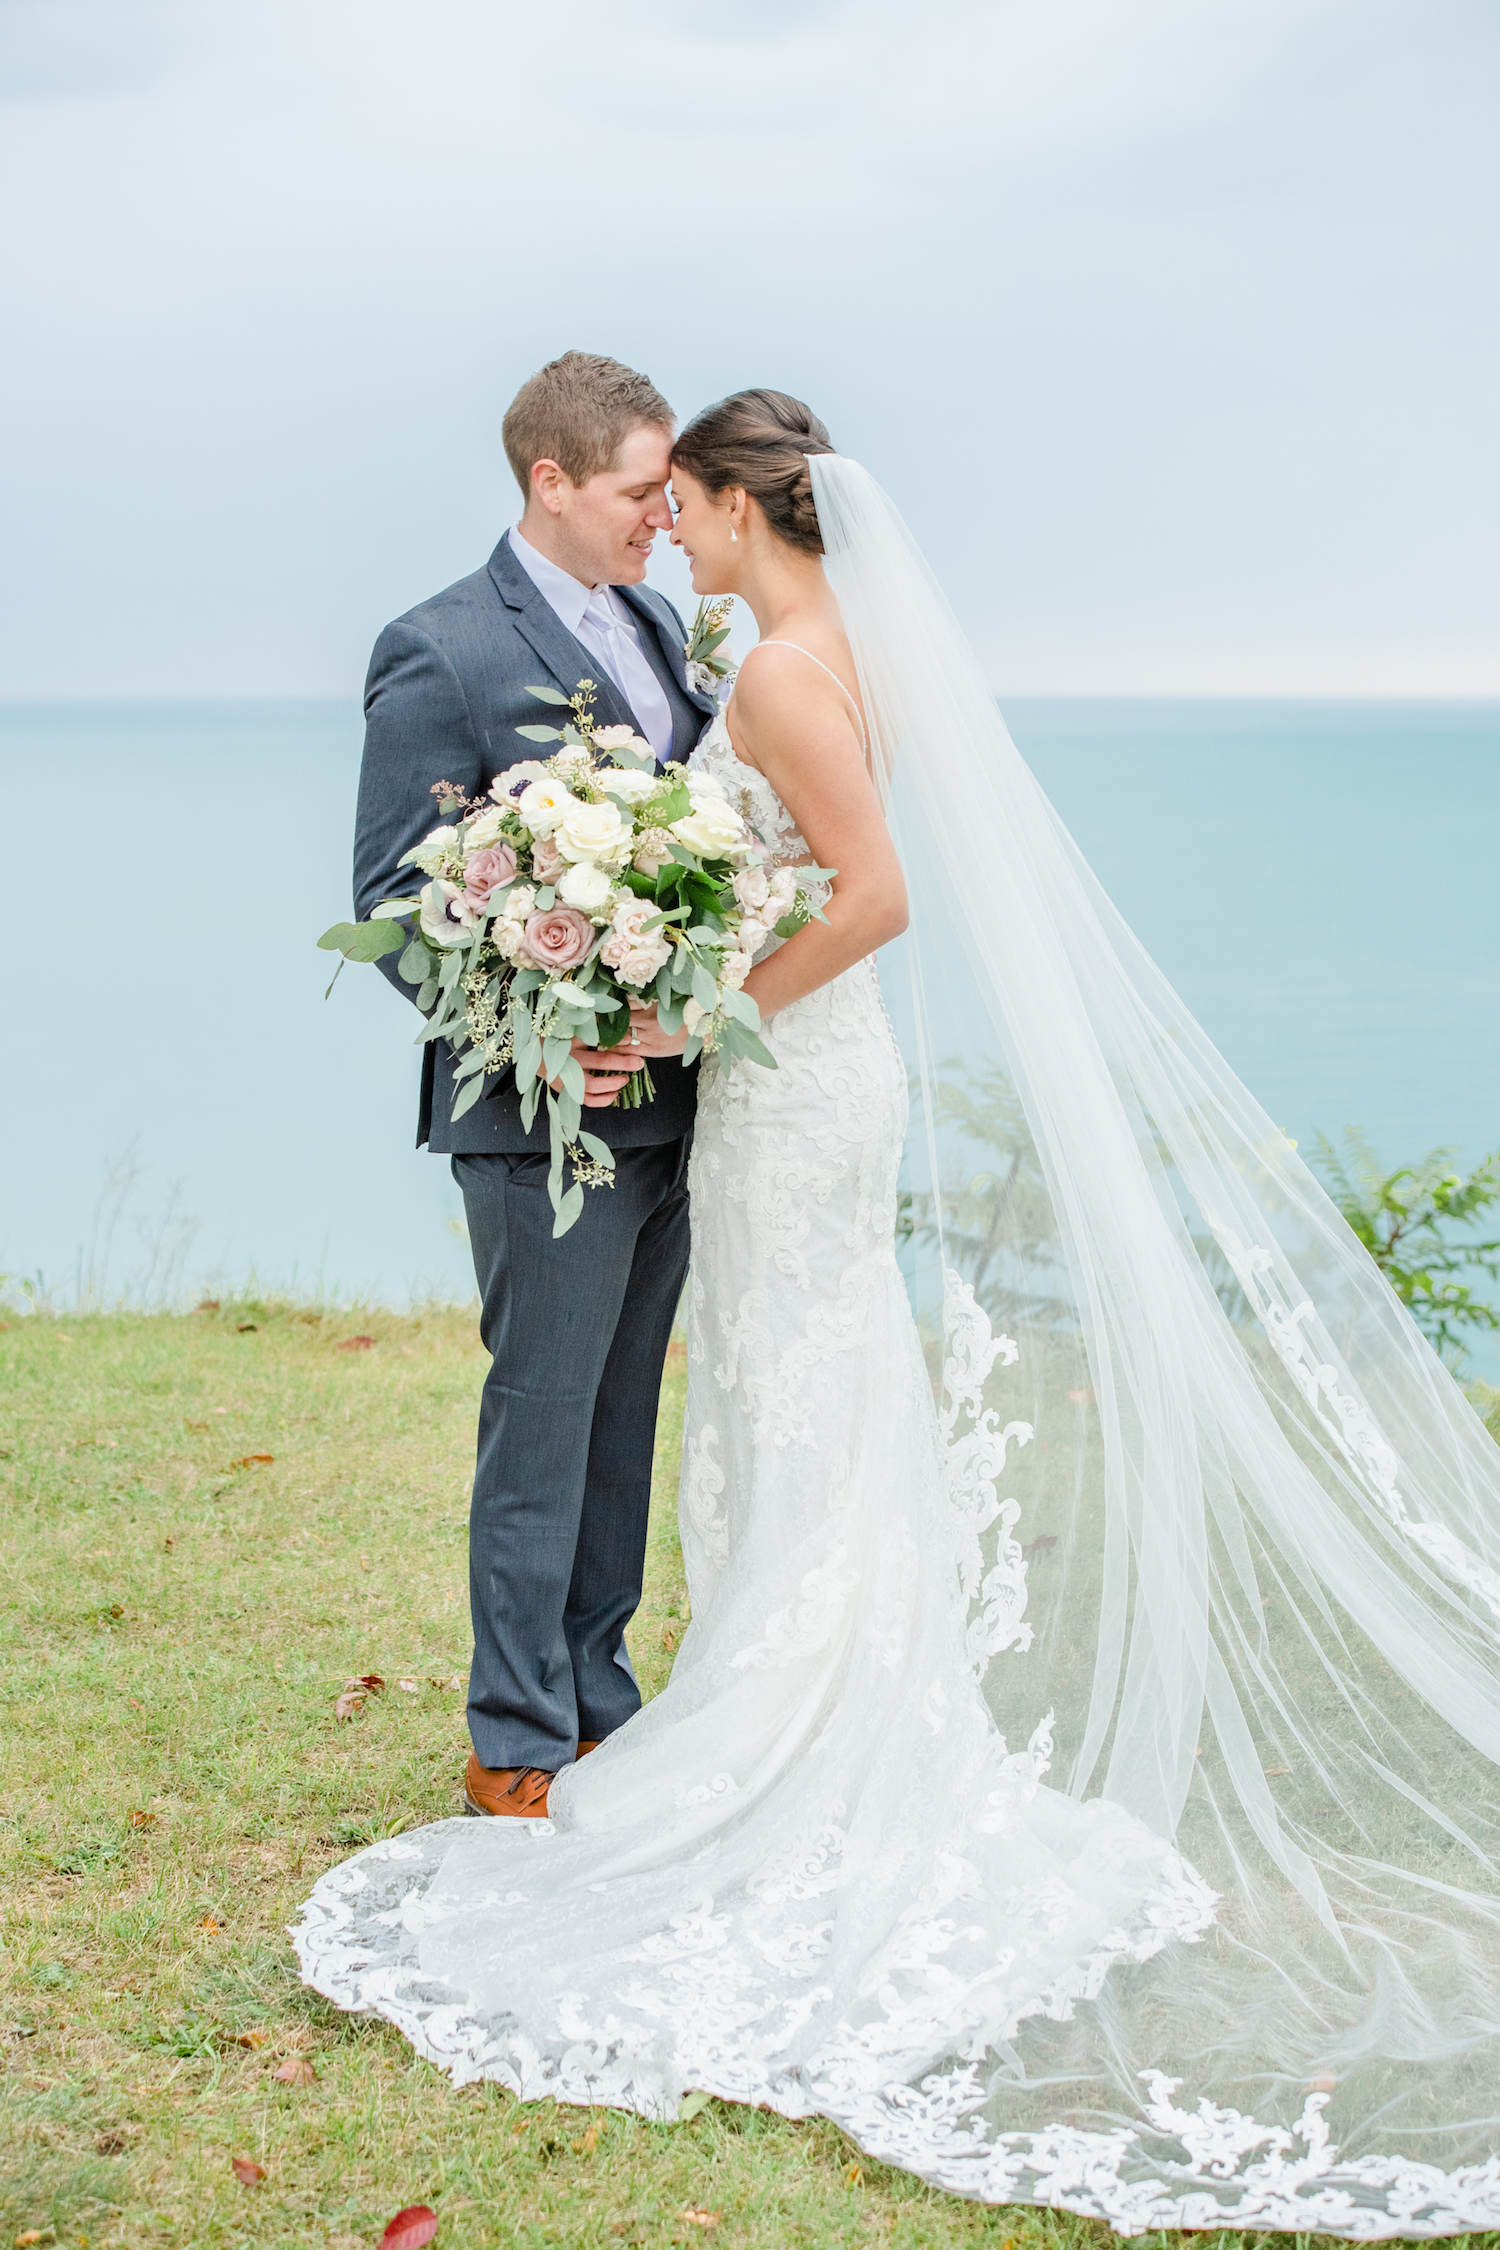 Bride and groom touching foreheads at the lakehouse wedding